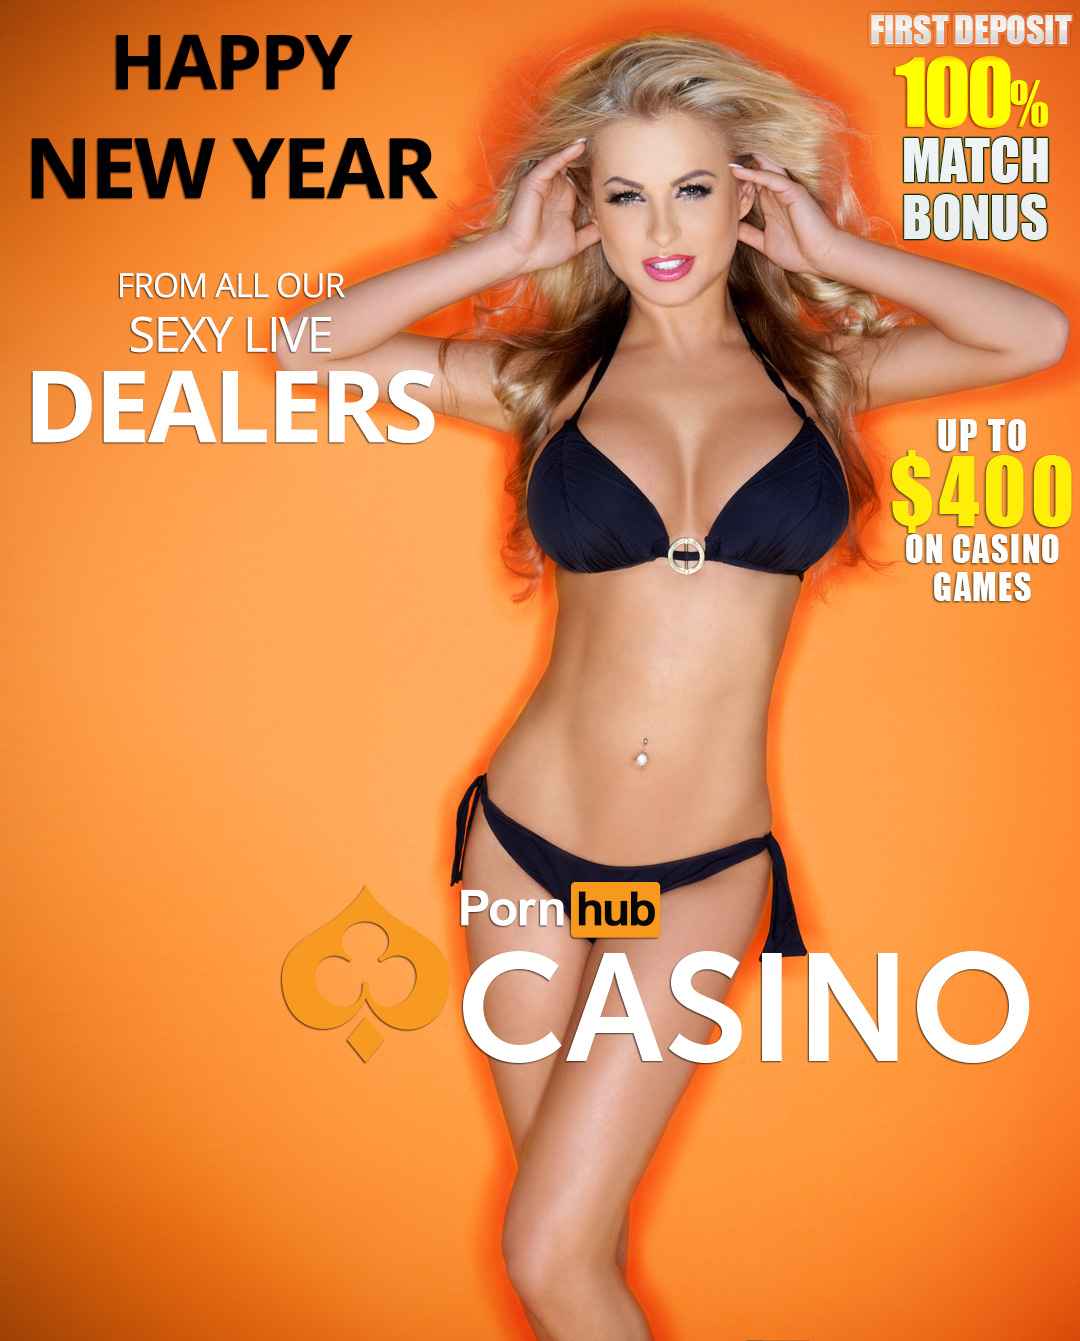 instant-100-1st-deposit-bonus-of-up-to-400-on-casino-games-sport-bets-when-you-join-sitename